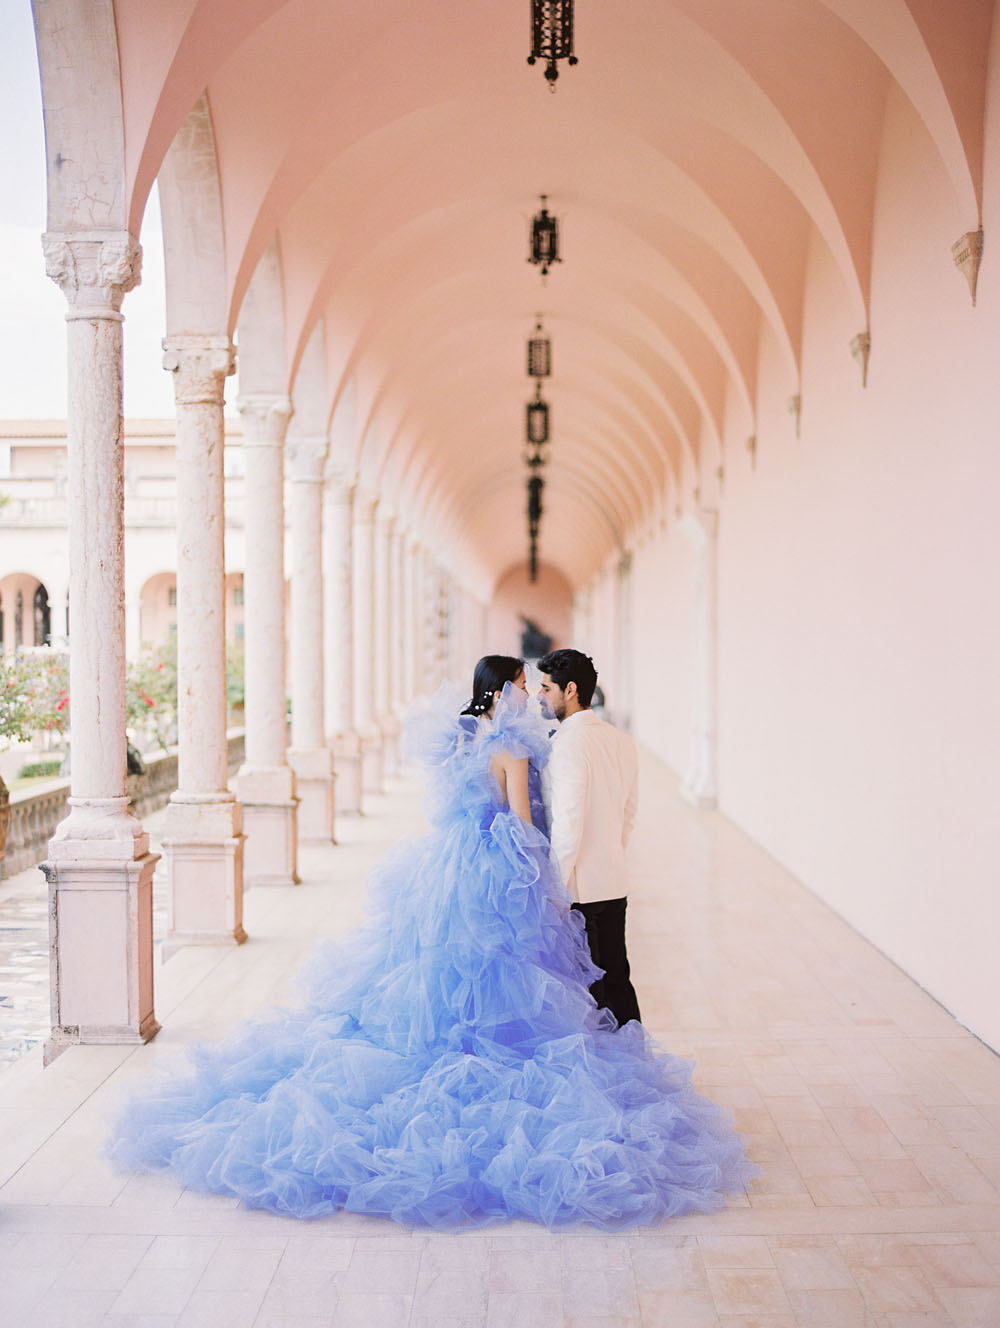 Romantic Elopement Inspo With A Purple Tulle Bridal Gown 100 Layer Cake